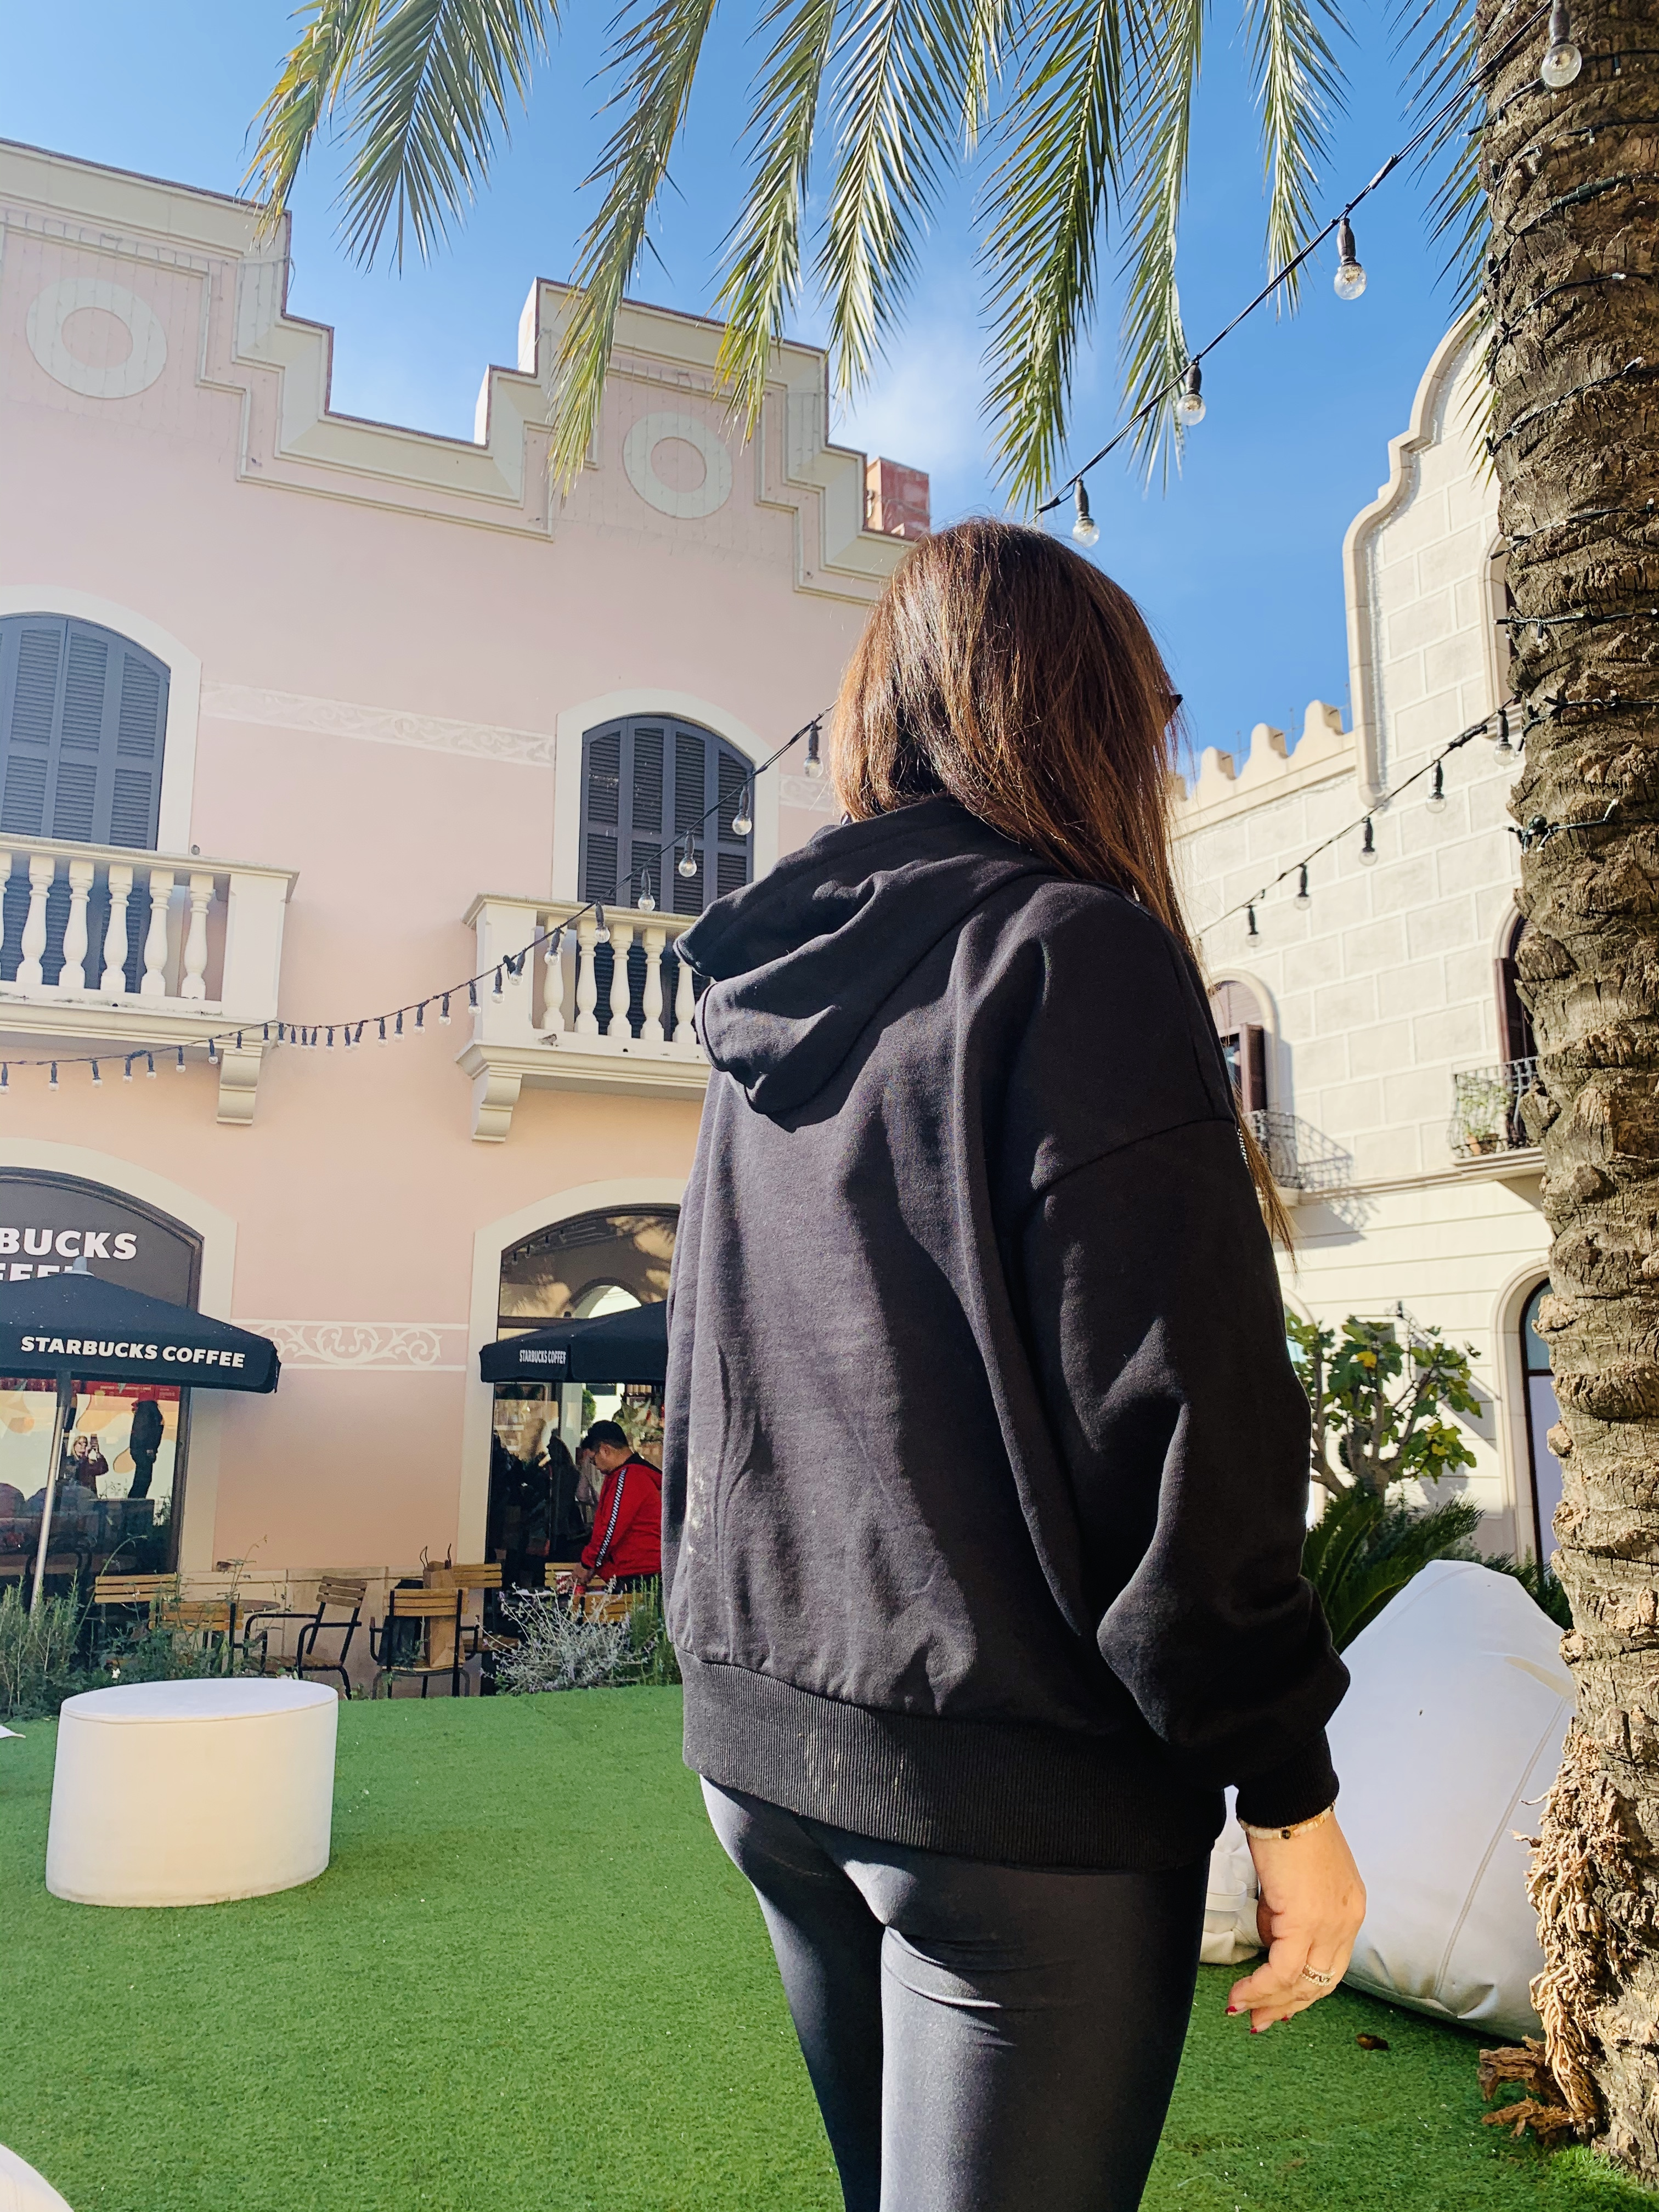 Sudadera, bershka, billie, eilish, tendencias, xxl, whynot, shopper, blogger, ochentas